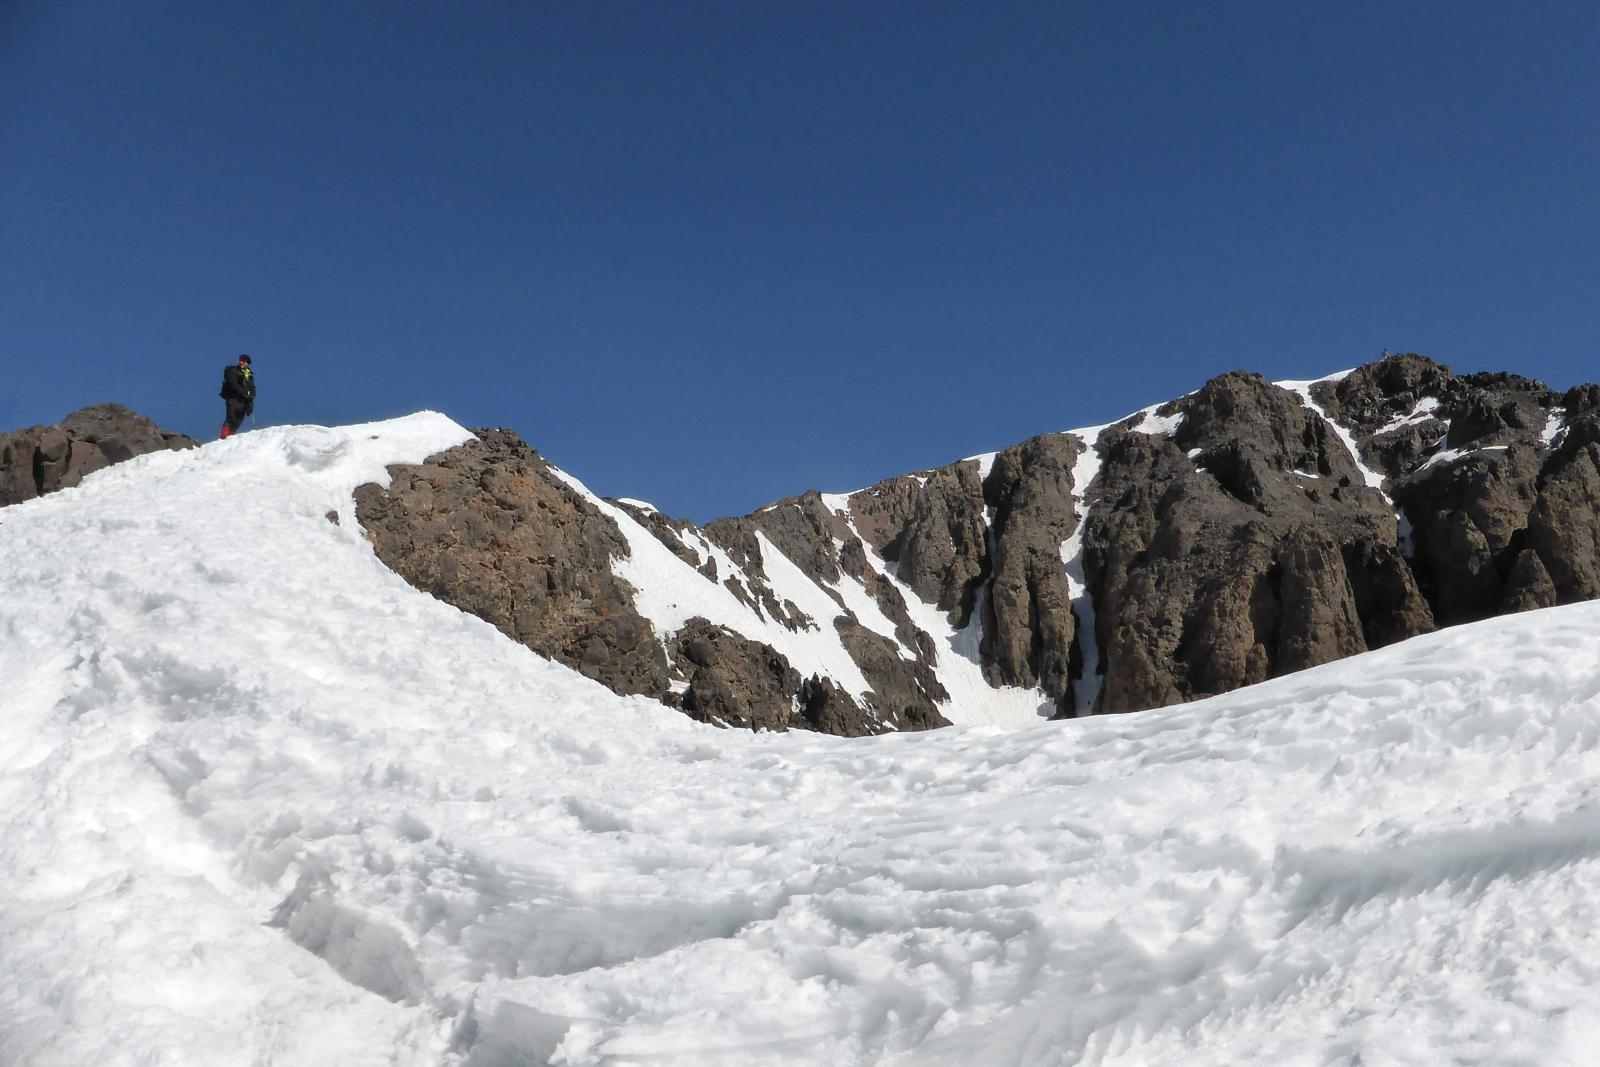 Photo de Atlas invernal (Marruecos): Refugio Les Mouflons - cima Toubkal (4.167m) - Refugio - Imlil